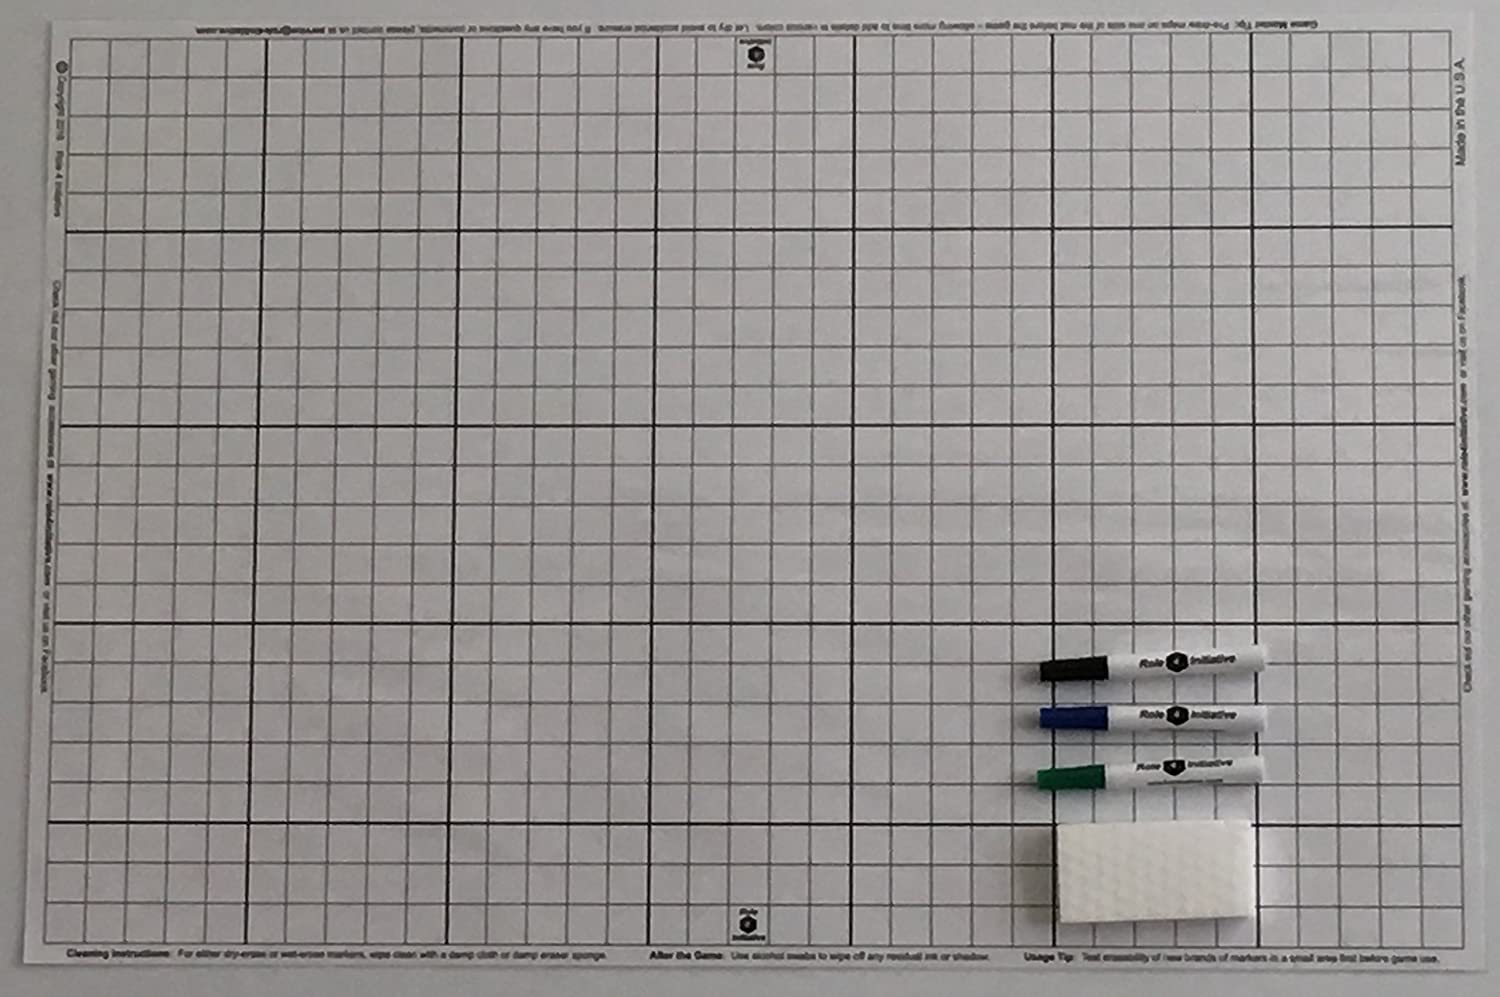 Amazon battle grid game mat dry erase white 24 x 36 with amazon battle grid game mat dry erase white 24 x 36 with 3 markers and eraser double sided 1 squares for role playing games and miniatures negle Gallery